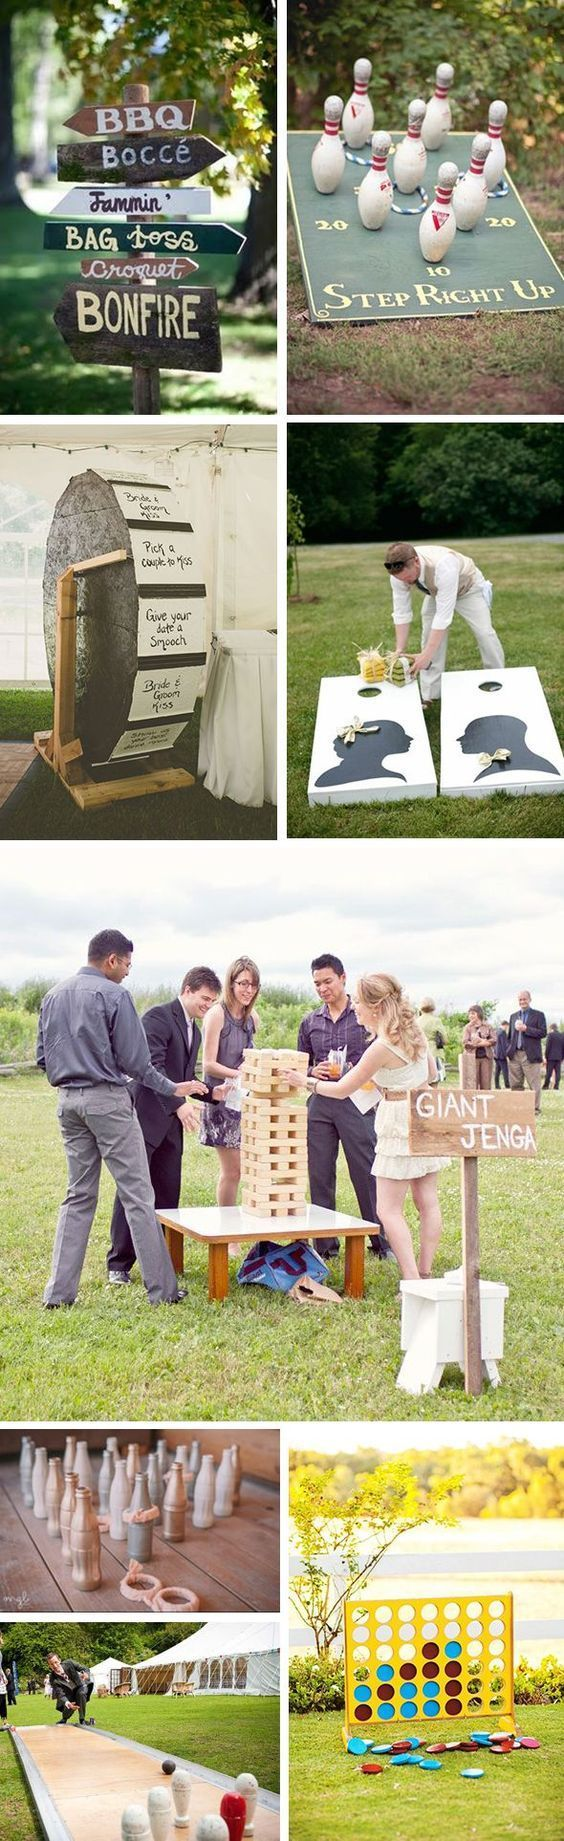 Outdoor Wedding Reception Lawn Game Ideas / http://www.deerpearlflowers.com/outdoor-wedding-reception-lawn-game-ideas/2/